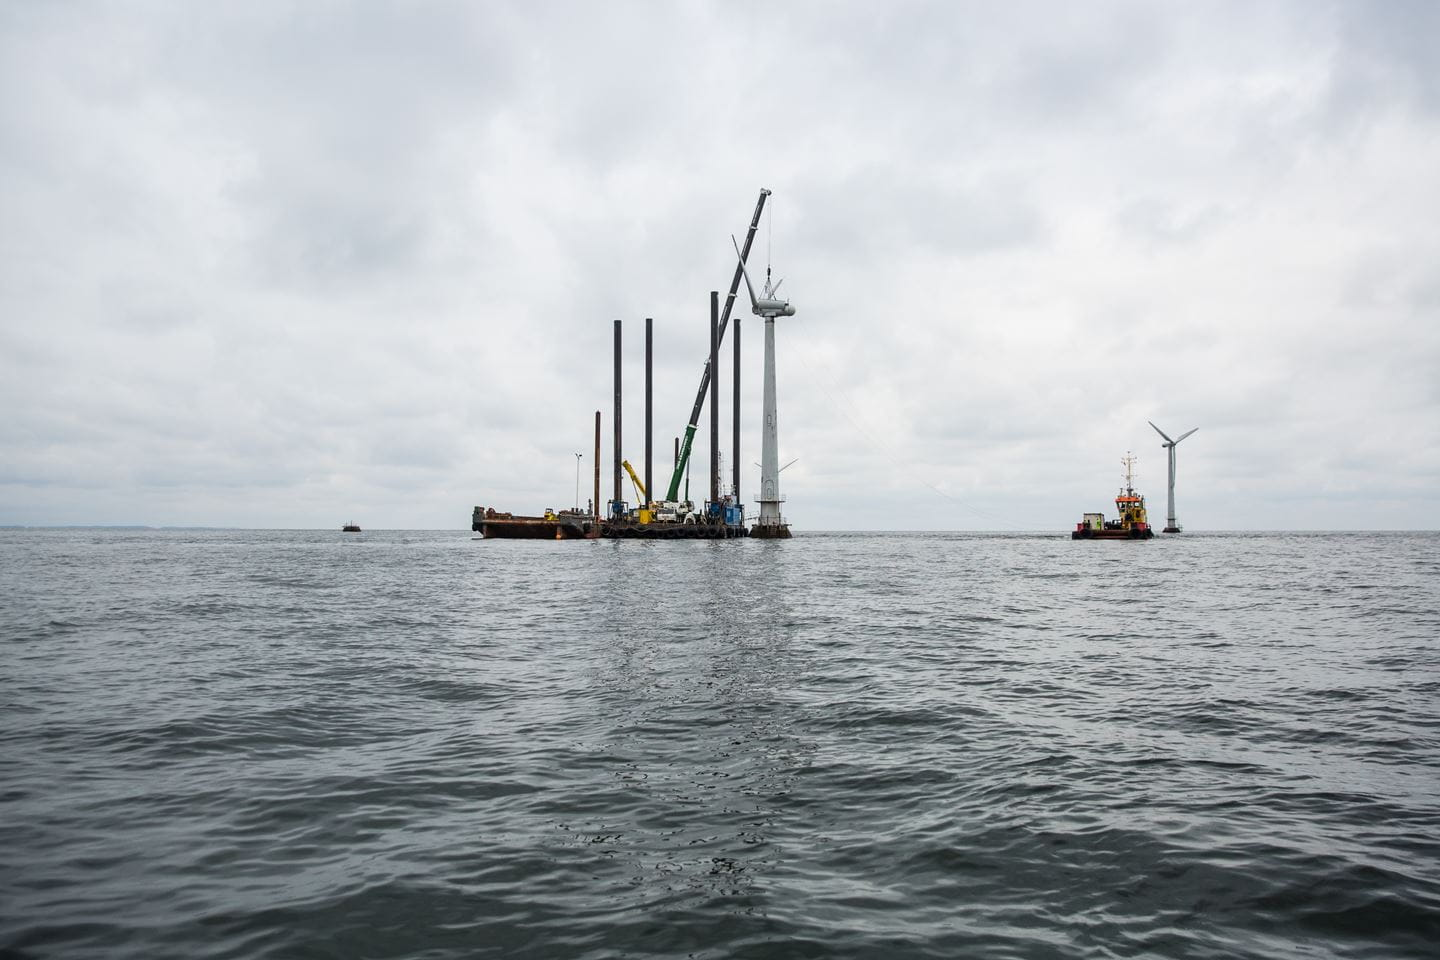 Wind turbines being disassembled